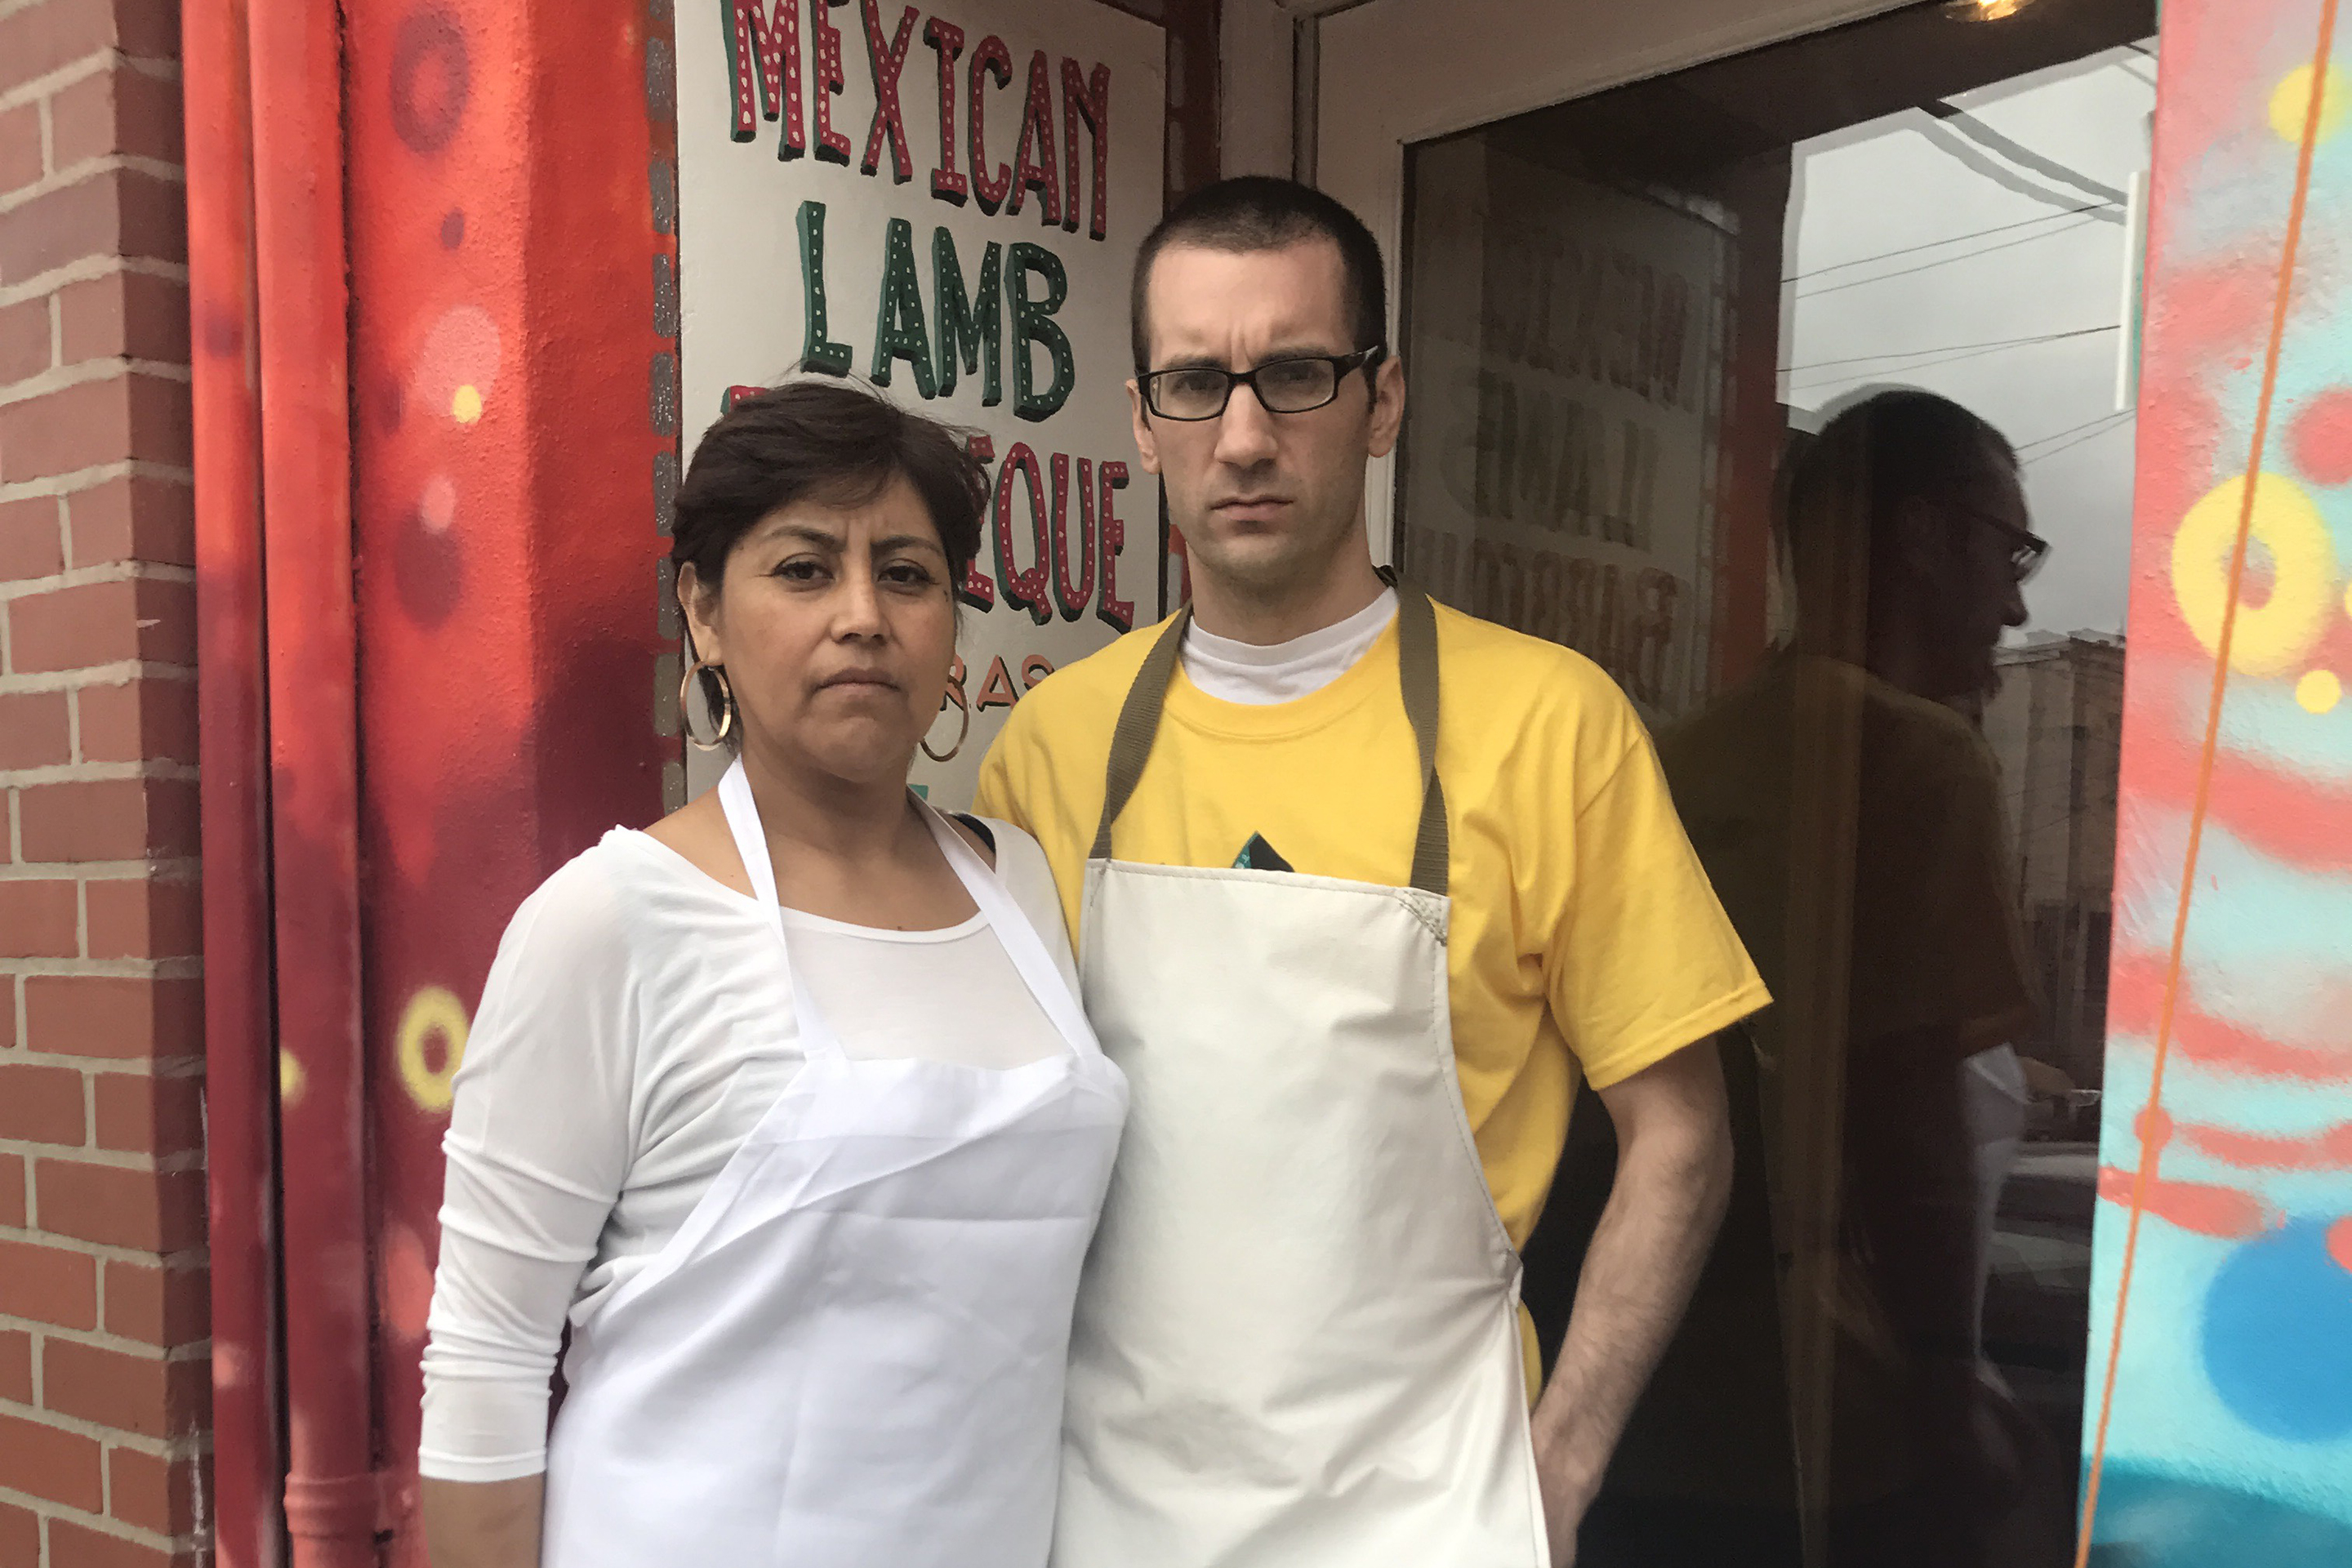 South Philly Barbacoa owners Cristina Martinez and Ben Miller pose outside their restaurant in Philadelphia.